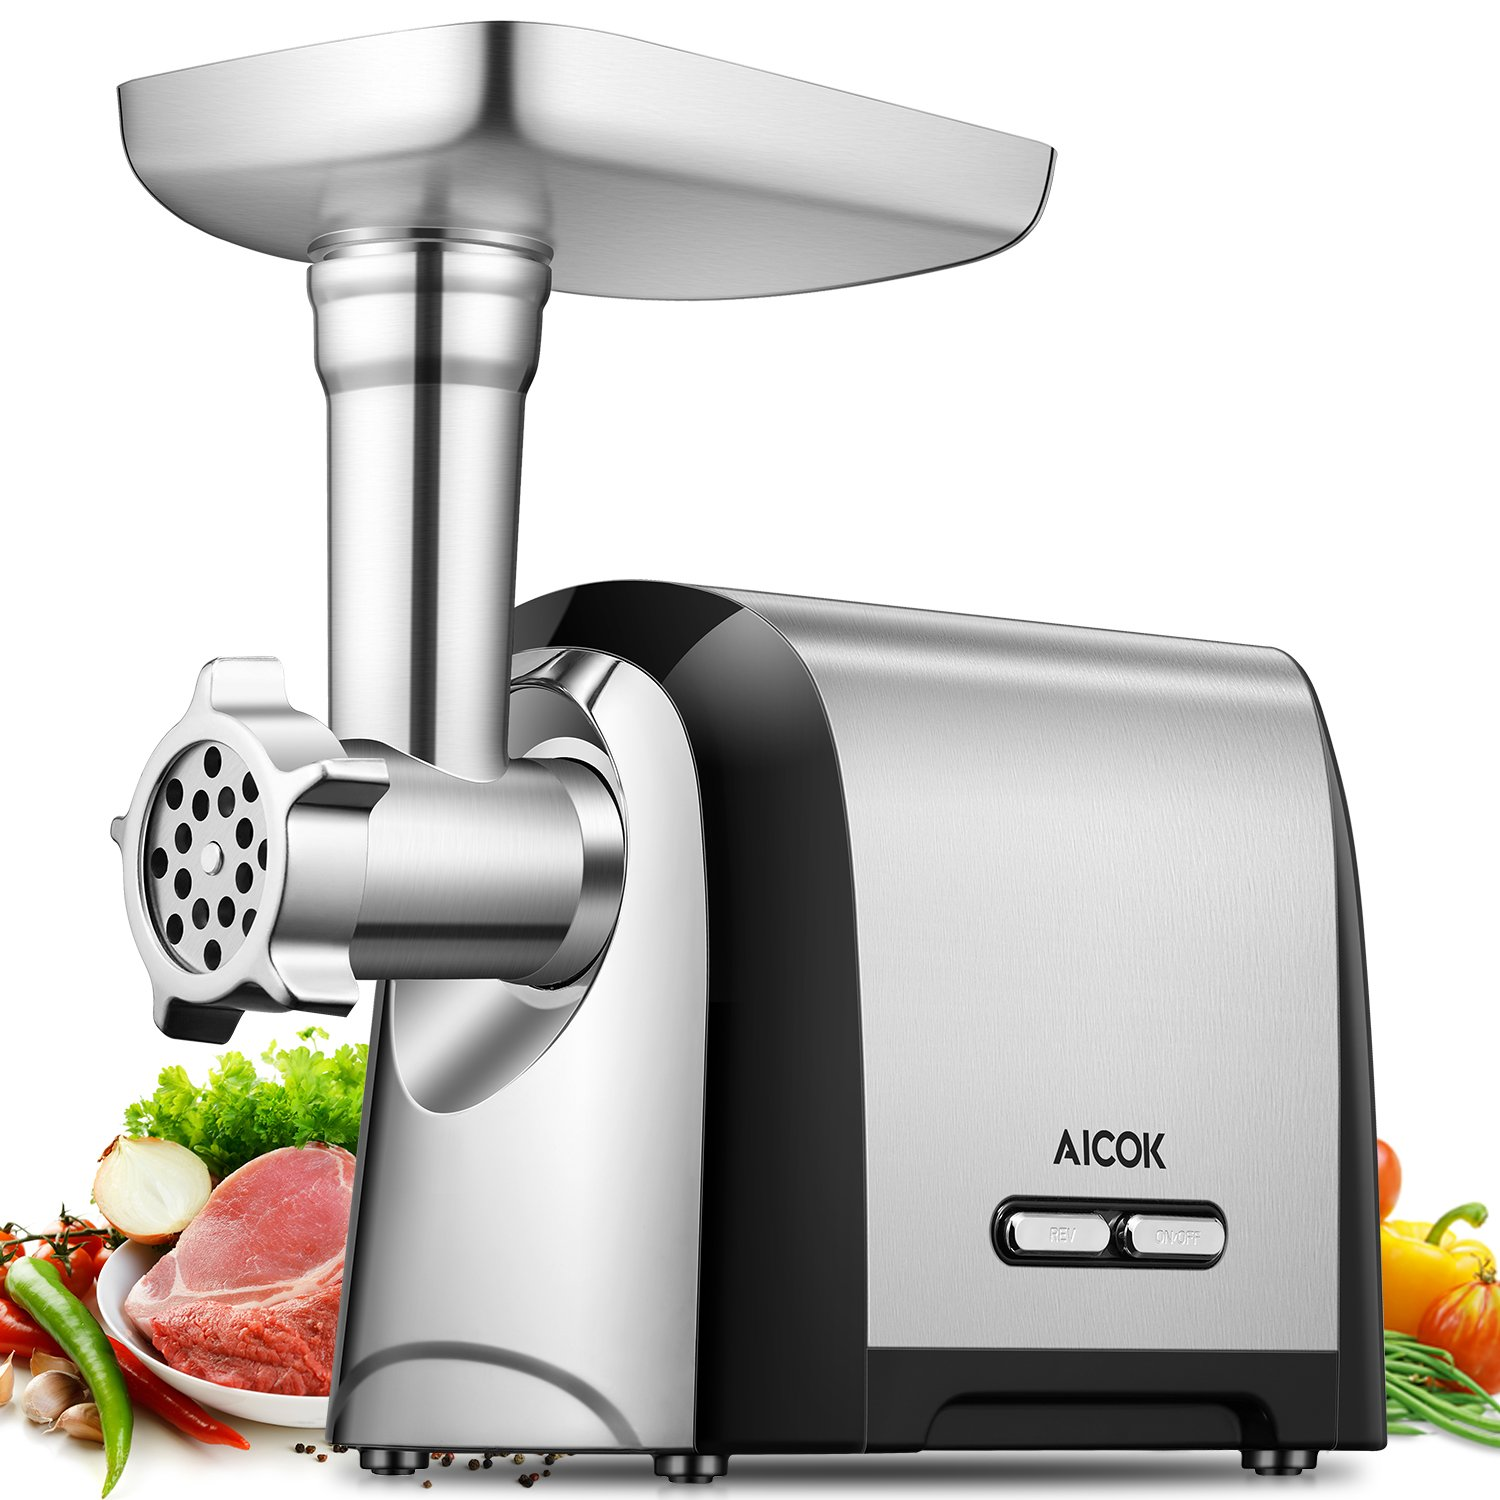 Aicok Electric Meat Grinder, Stainless Steel Meat Mincer & Sausage Stuffer, 1200W Max, 3 Grinding Plates, Sausage & Kubbe Kits Included, Concealed Accessory Box, Home Kitchen & Commercial Use